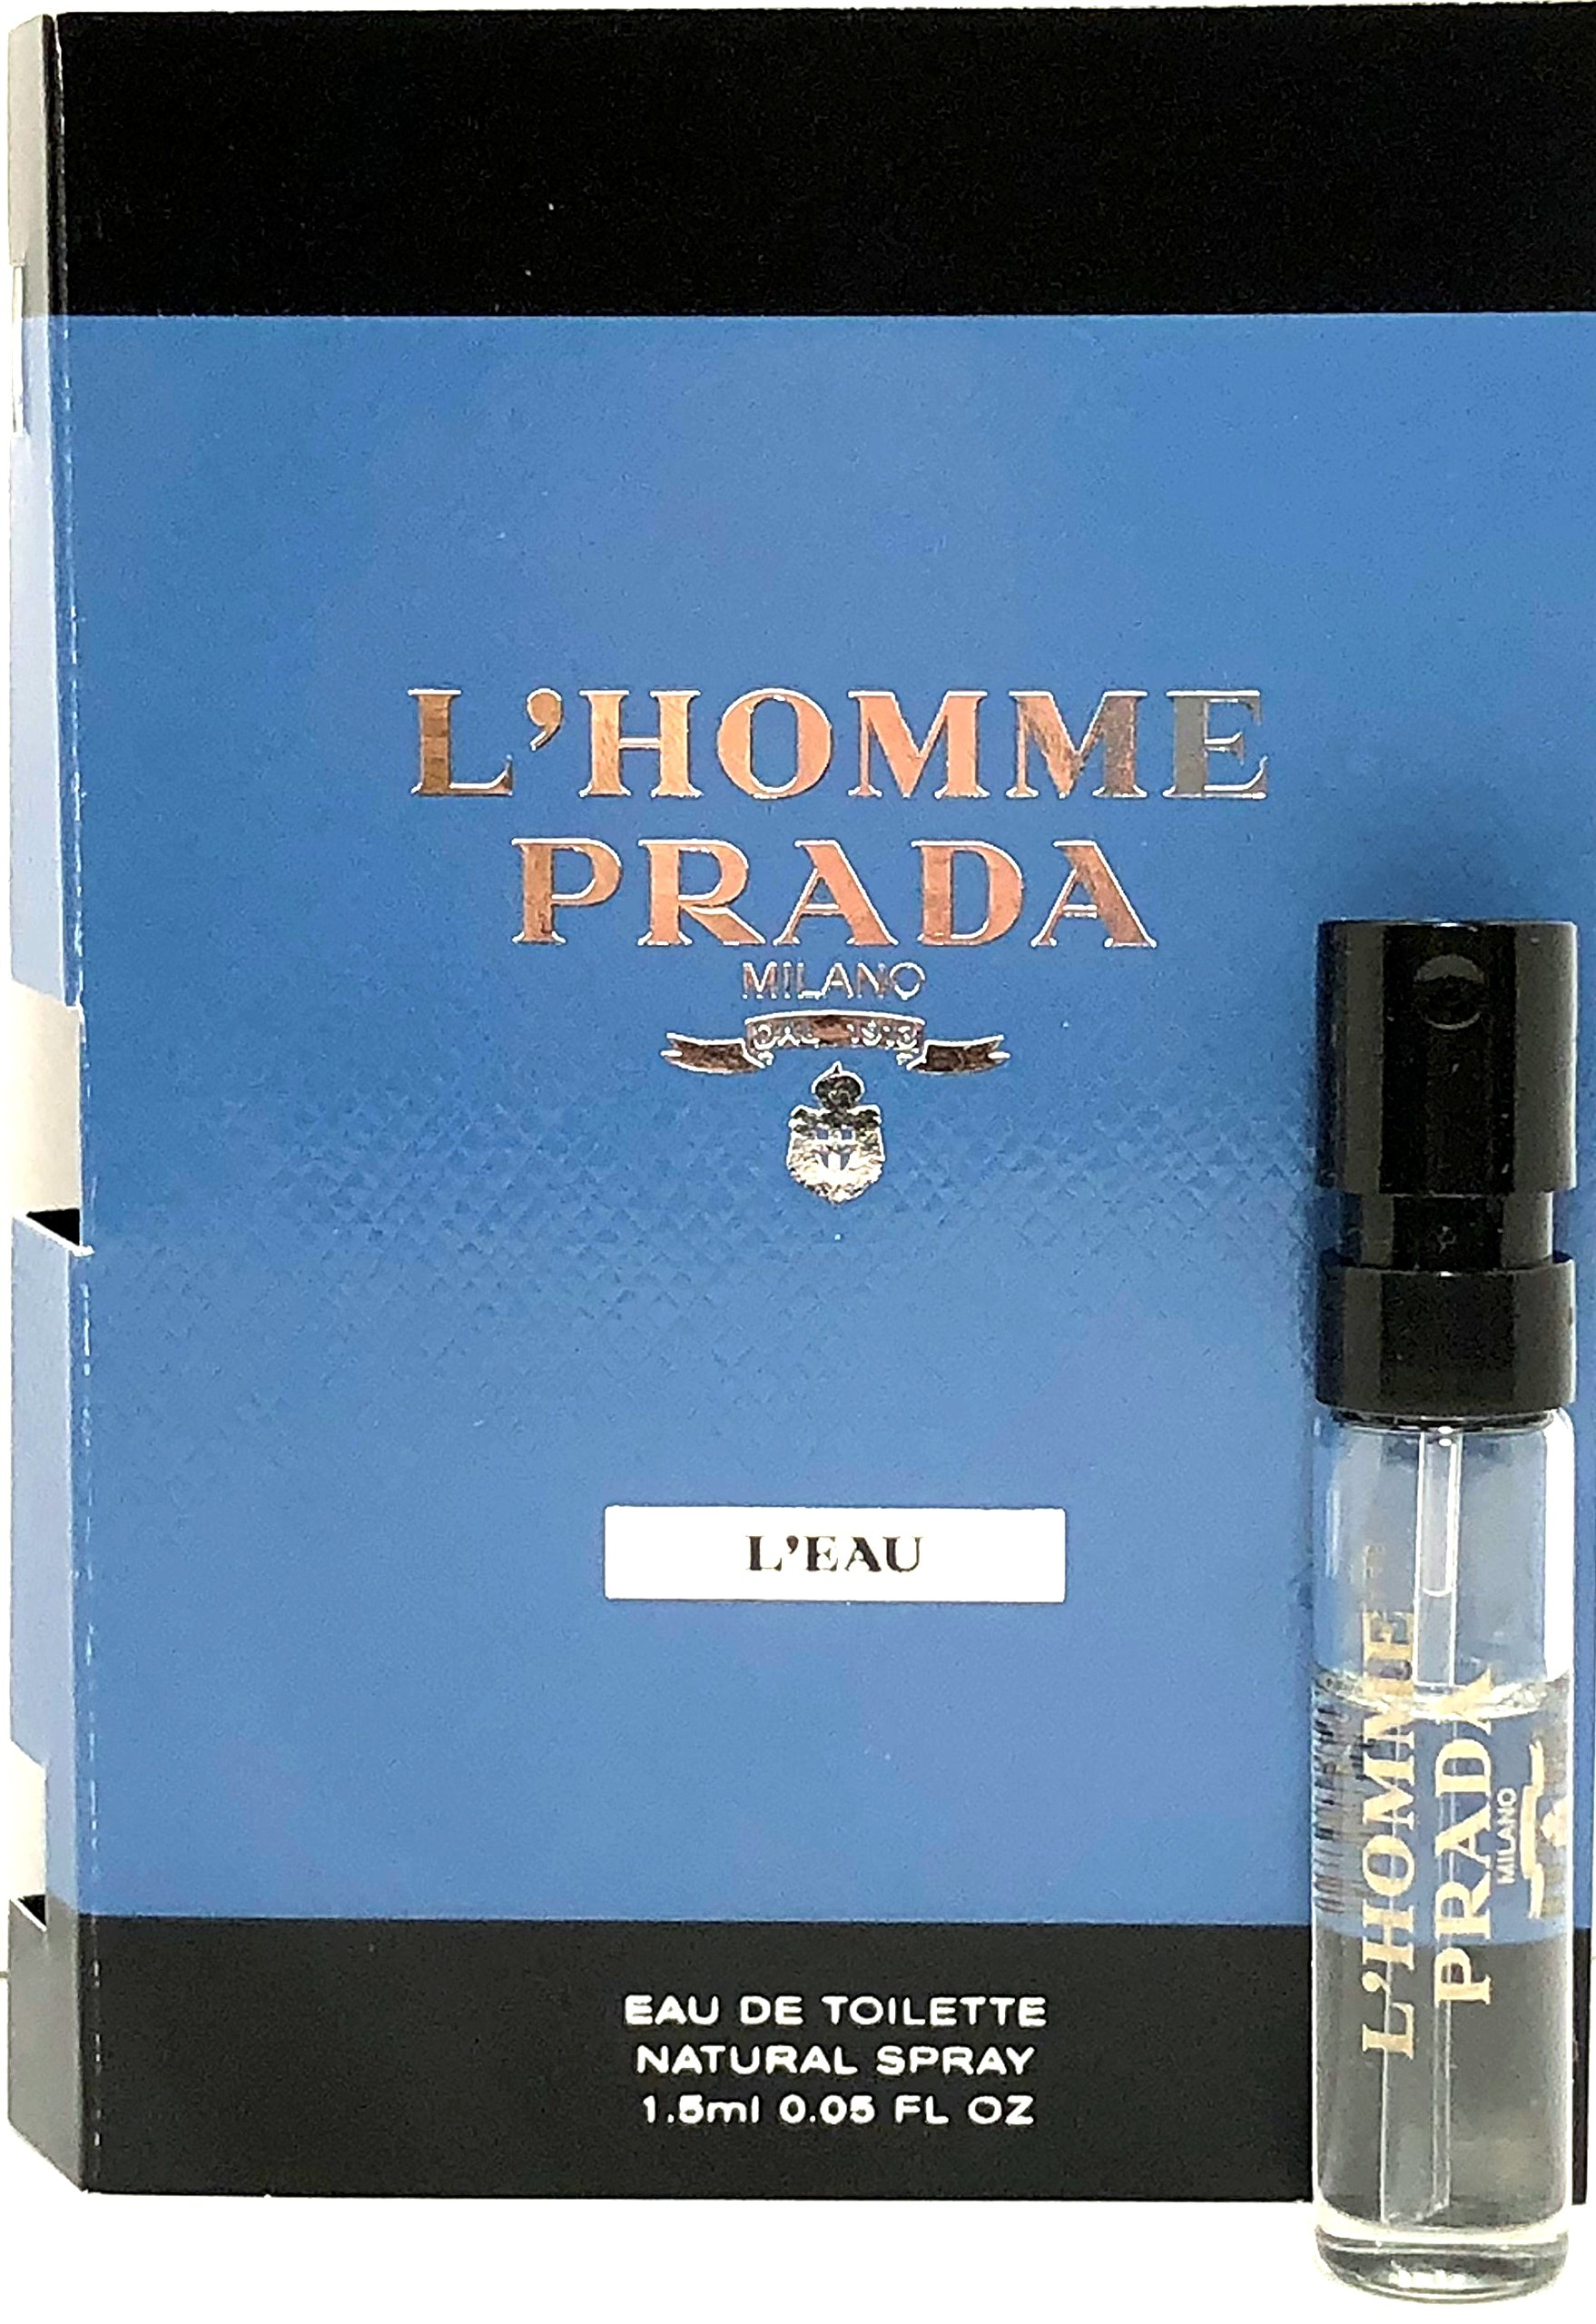 Prada L'Homme L'Eau Eau De Toilette Mini Spray Vial For Men 0.05 Oz/1.5 ml Sample Size